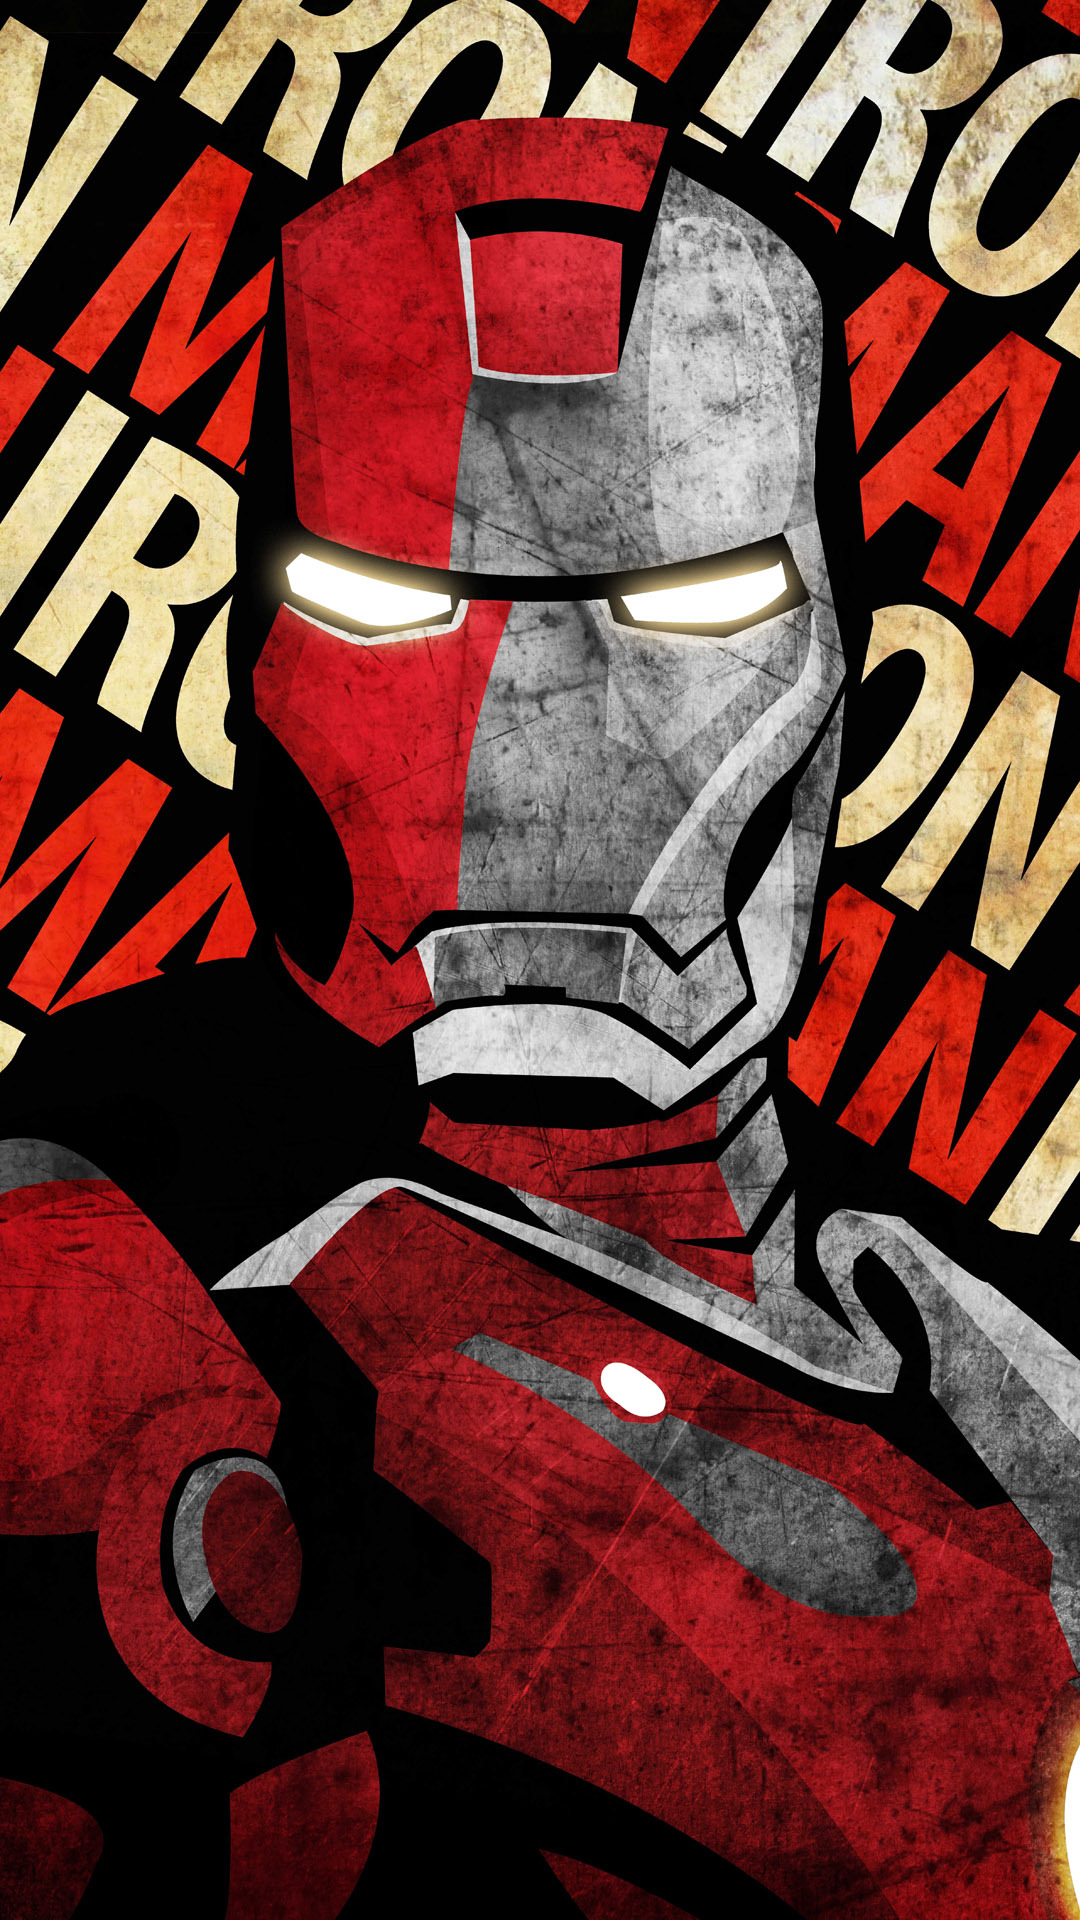 Amazoncom free iron man Apps amp Games